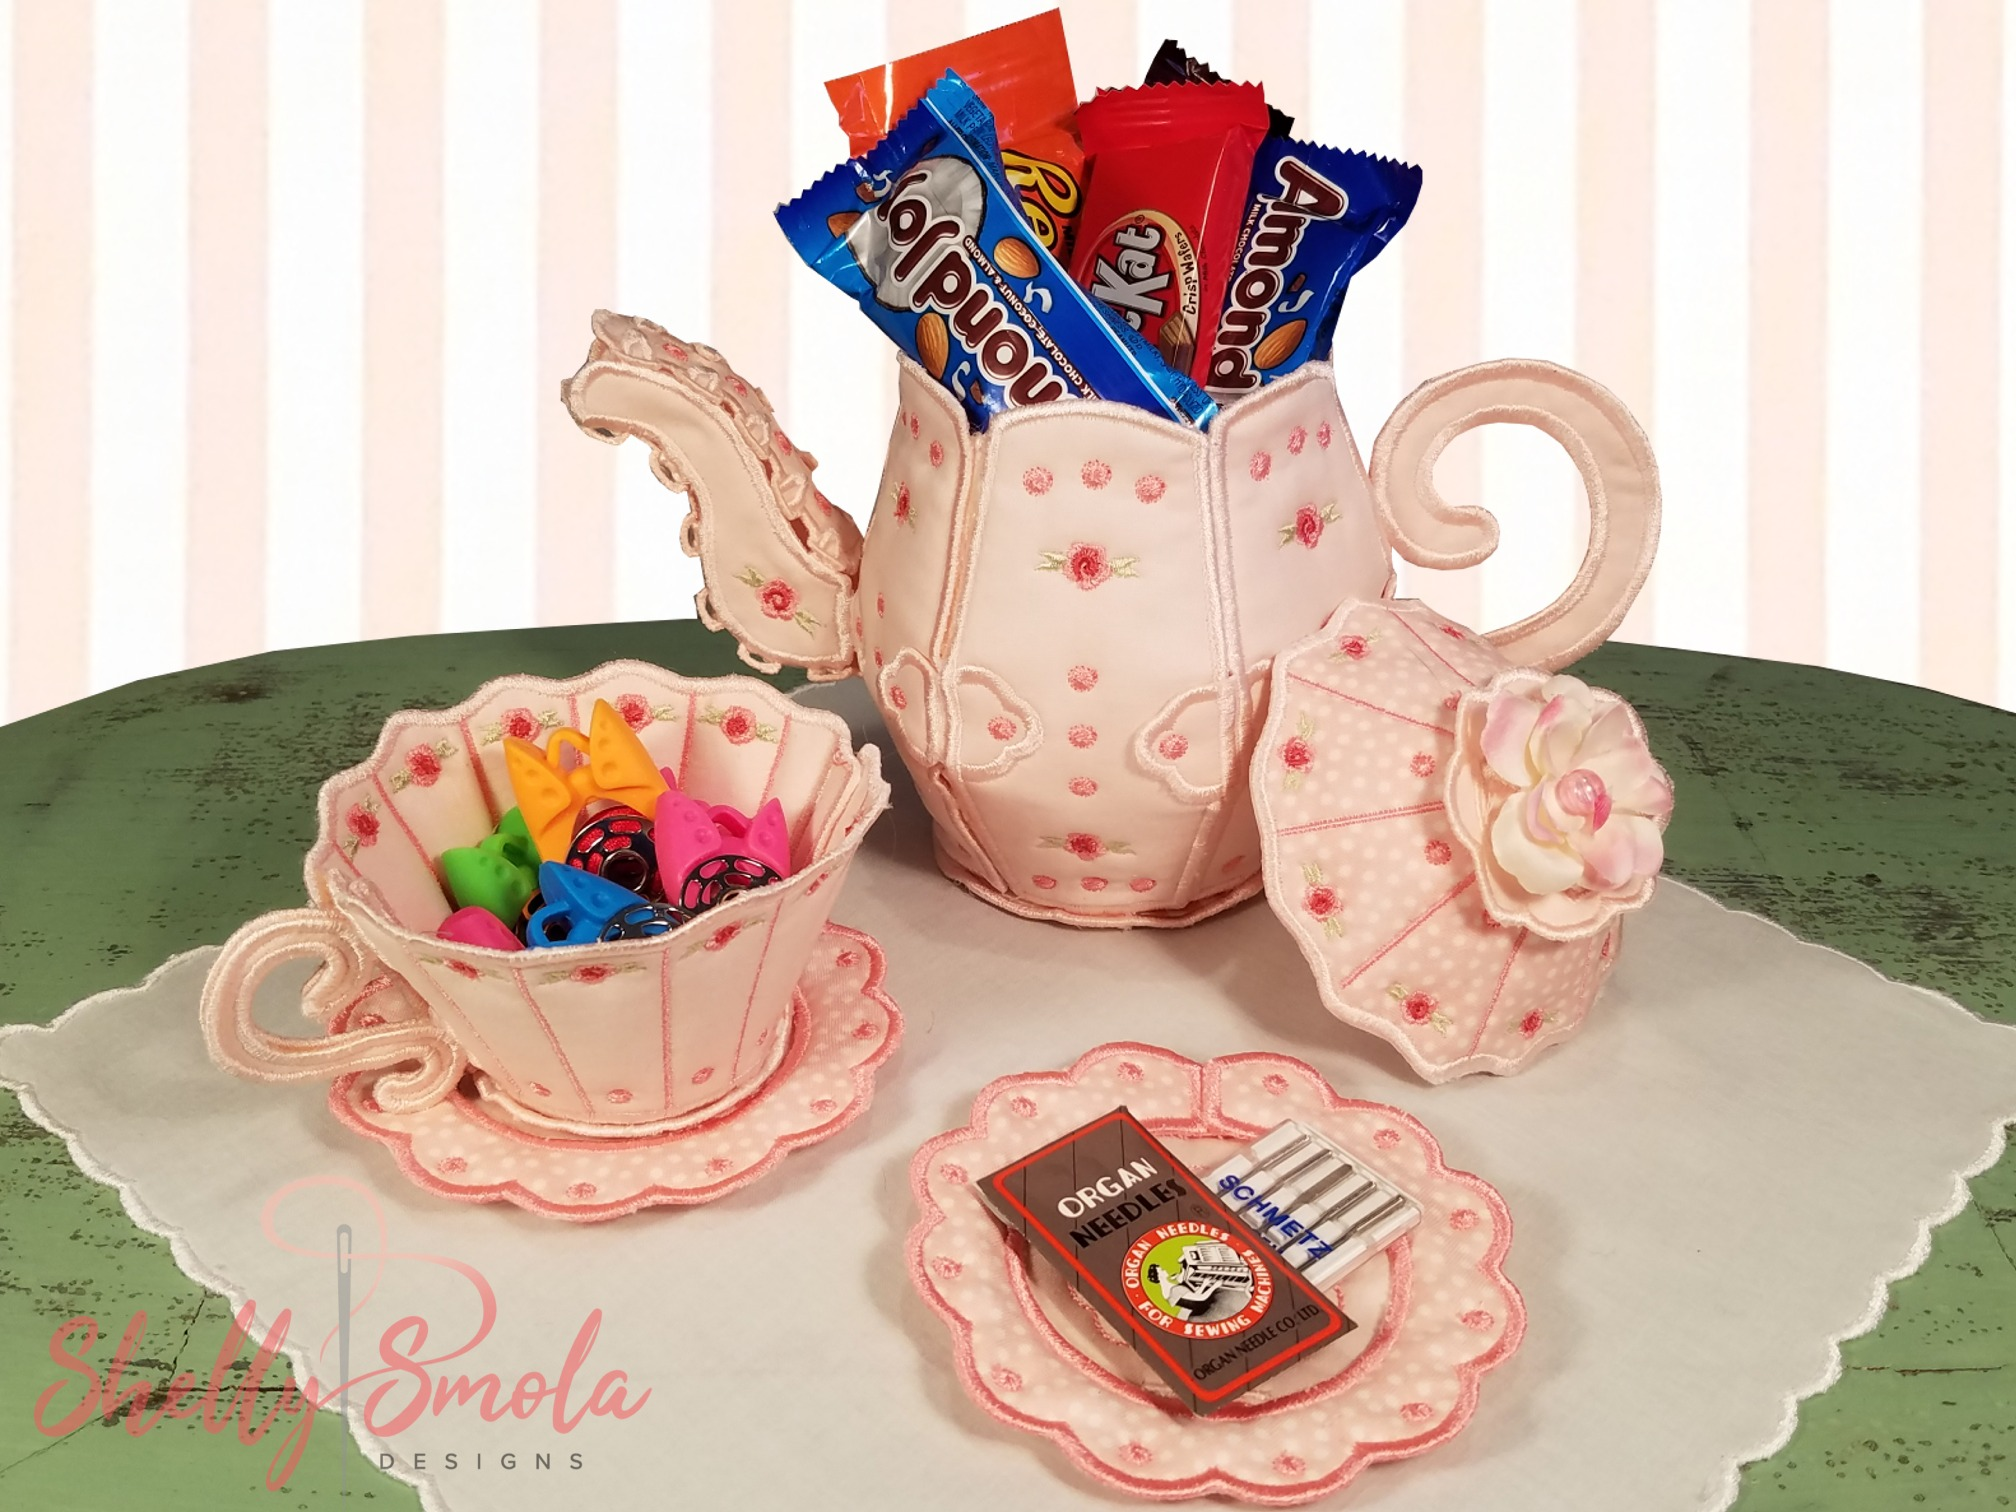 Tea for Two with Chocolate by Shelly Smola